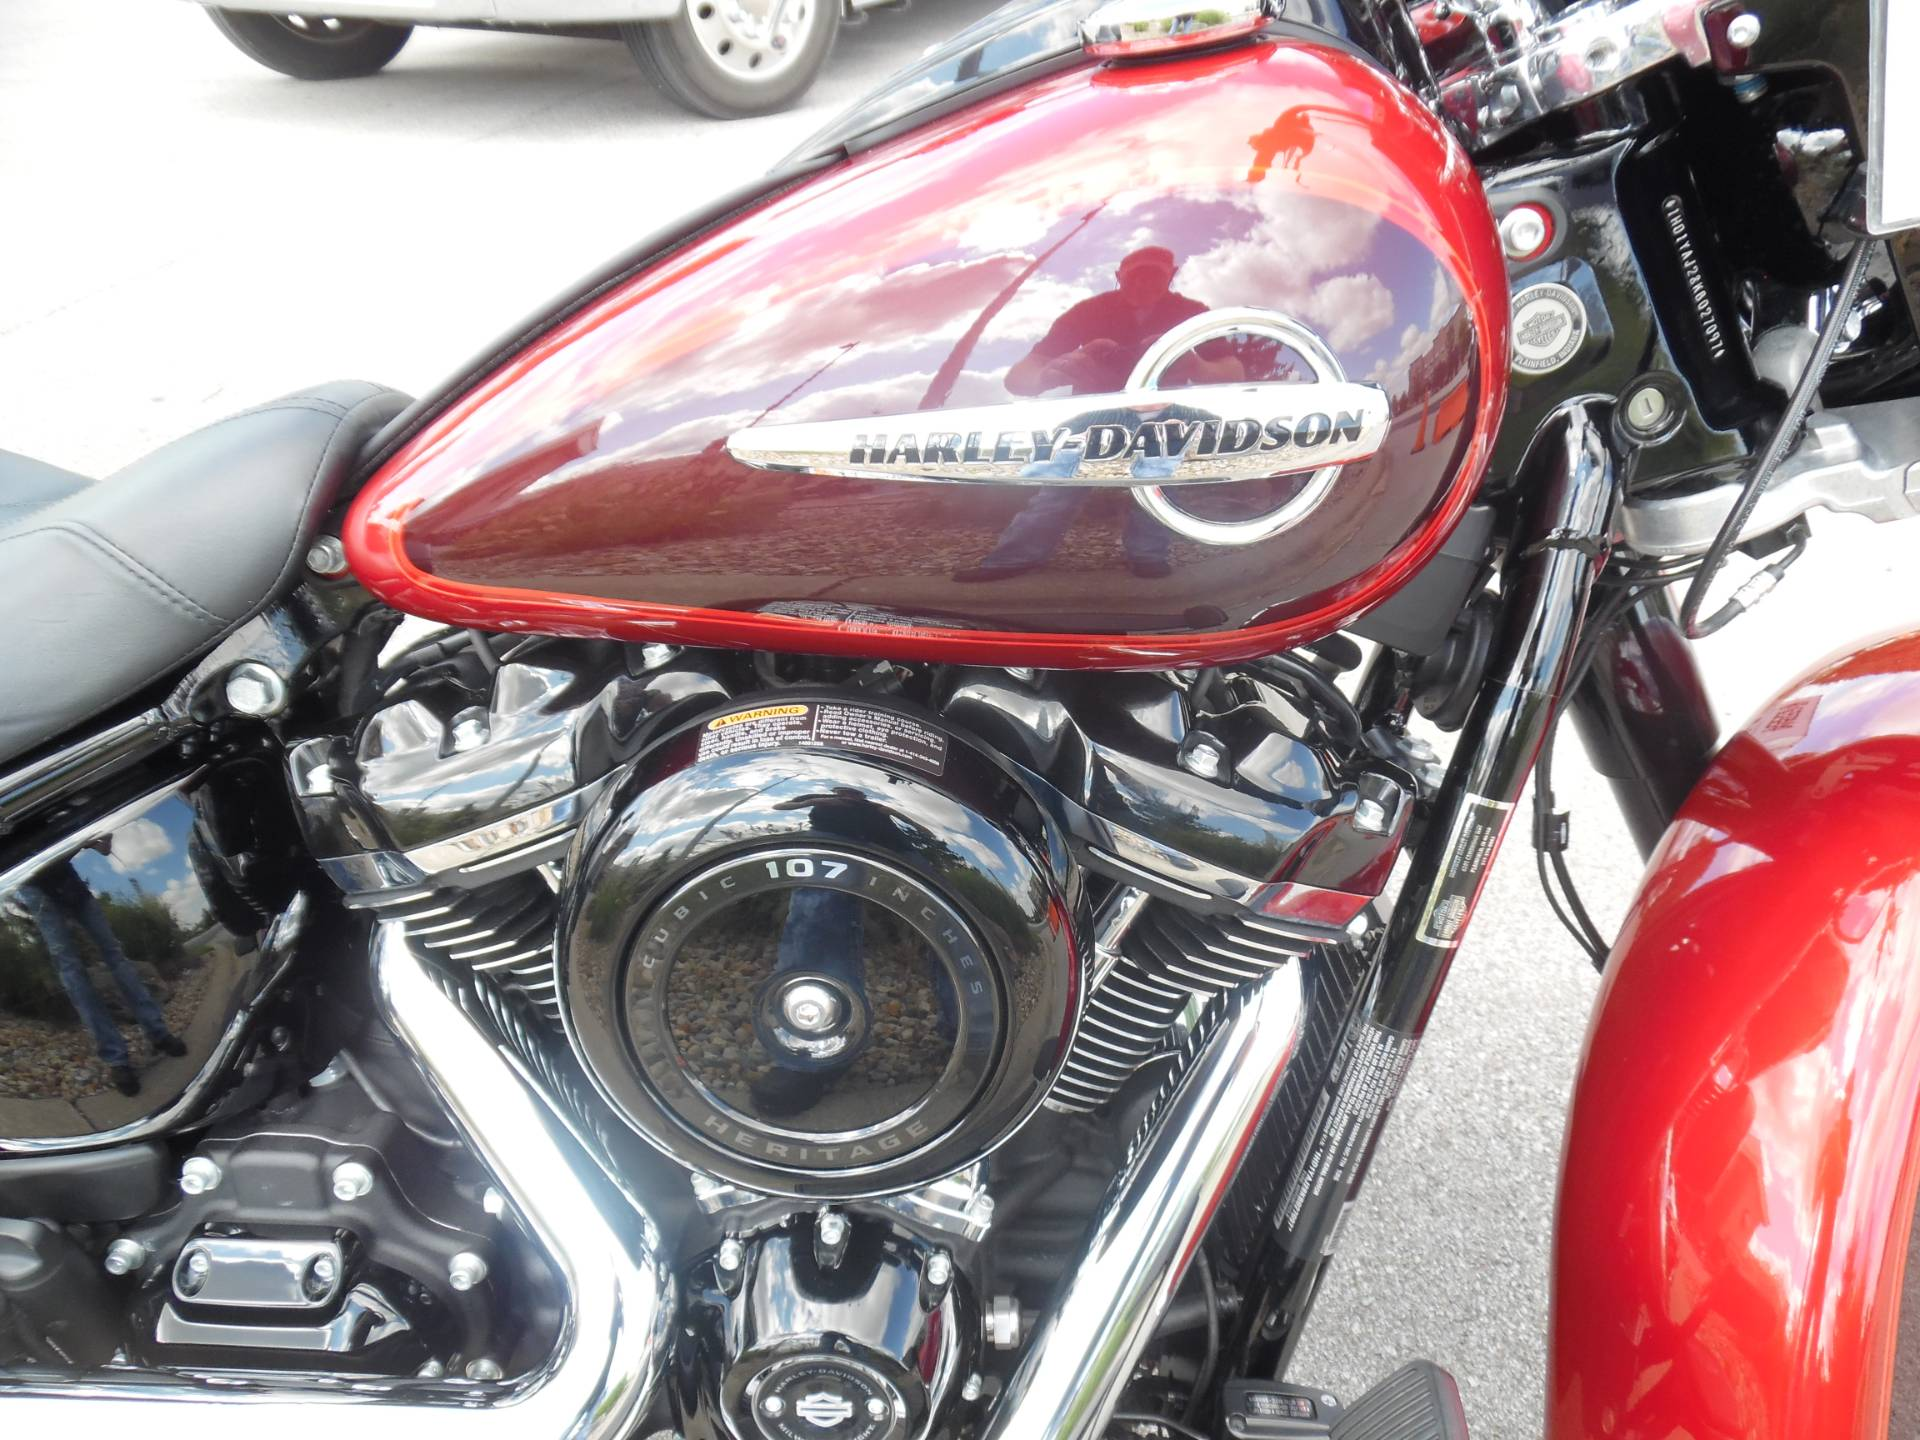 2019 Harley-Davidson Heritage Classic 107 in Plainfield, Indiana - Photo 2